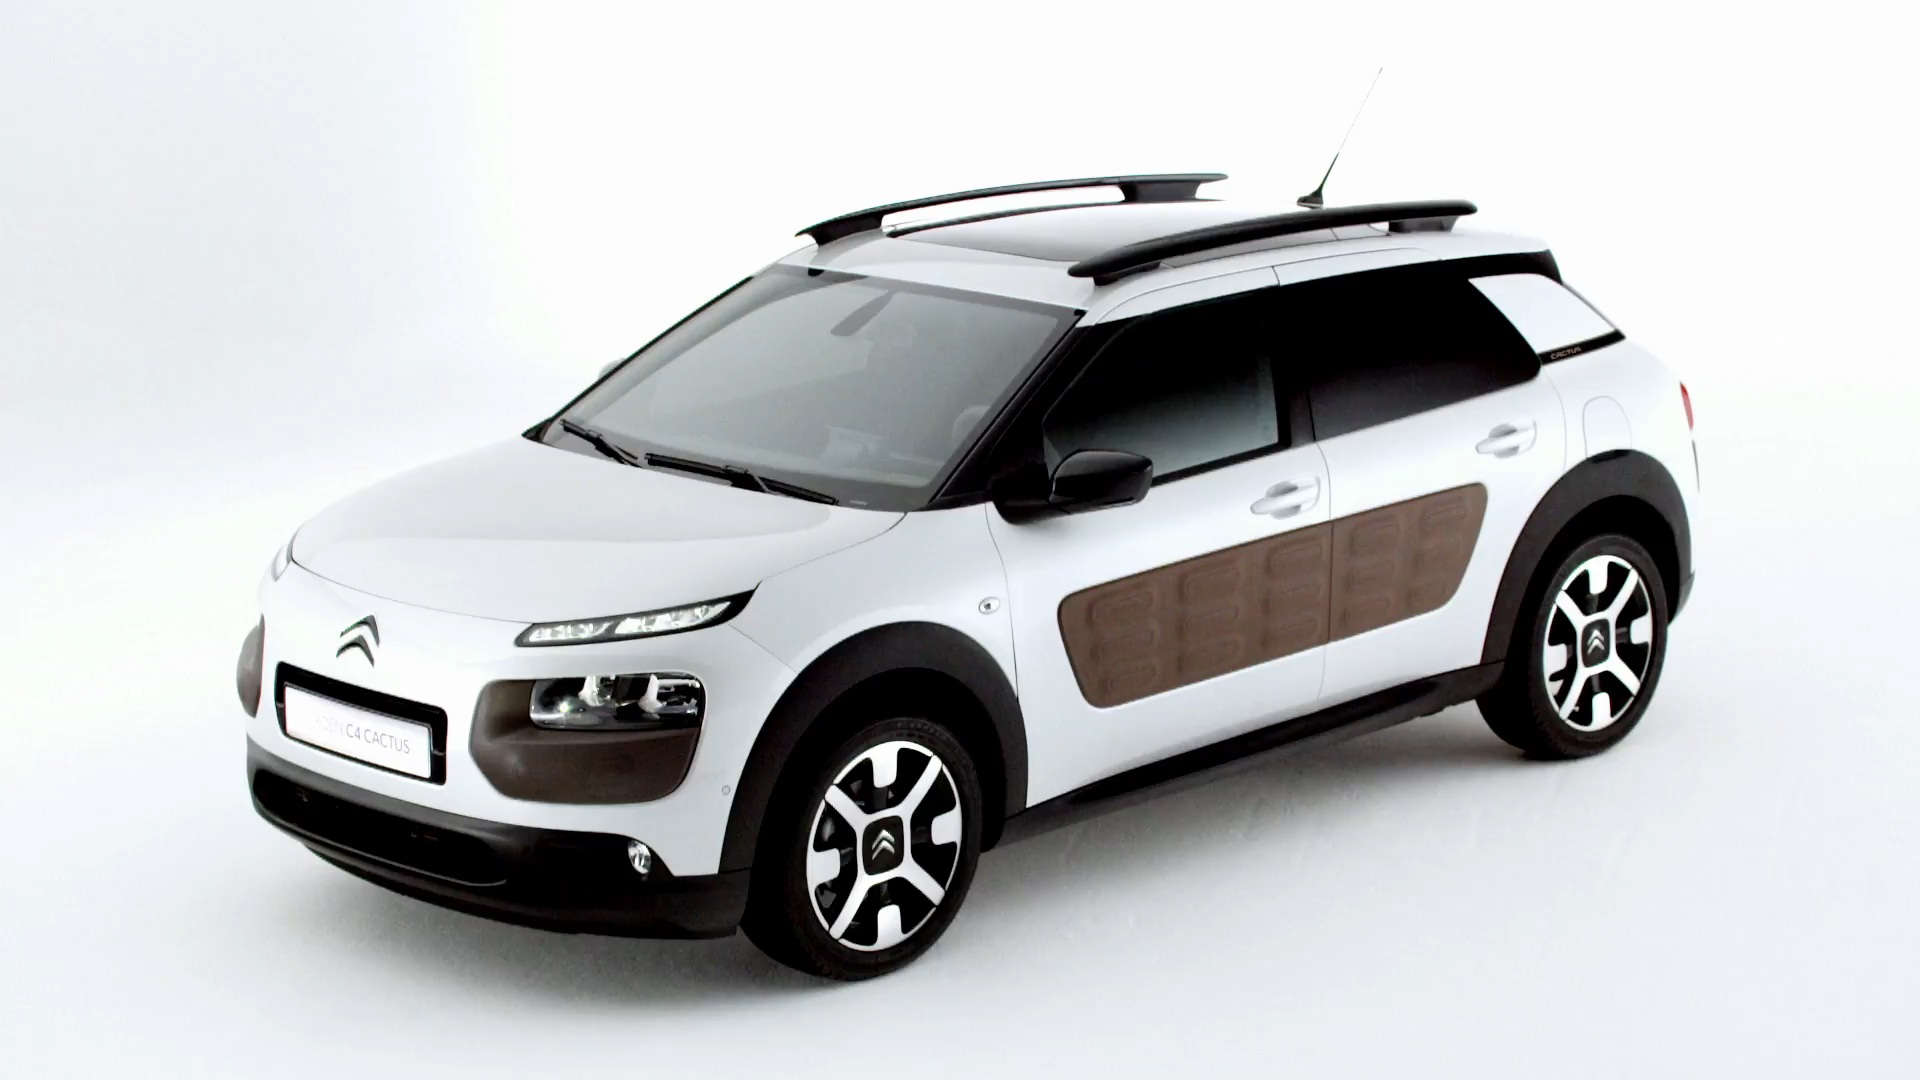 le c4 cactus la design week de milan le mag auto prestige. Black Bedroom Furniture Sets. Home Design Ideas